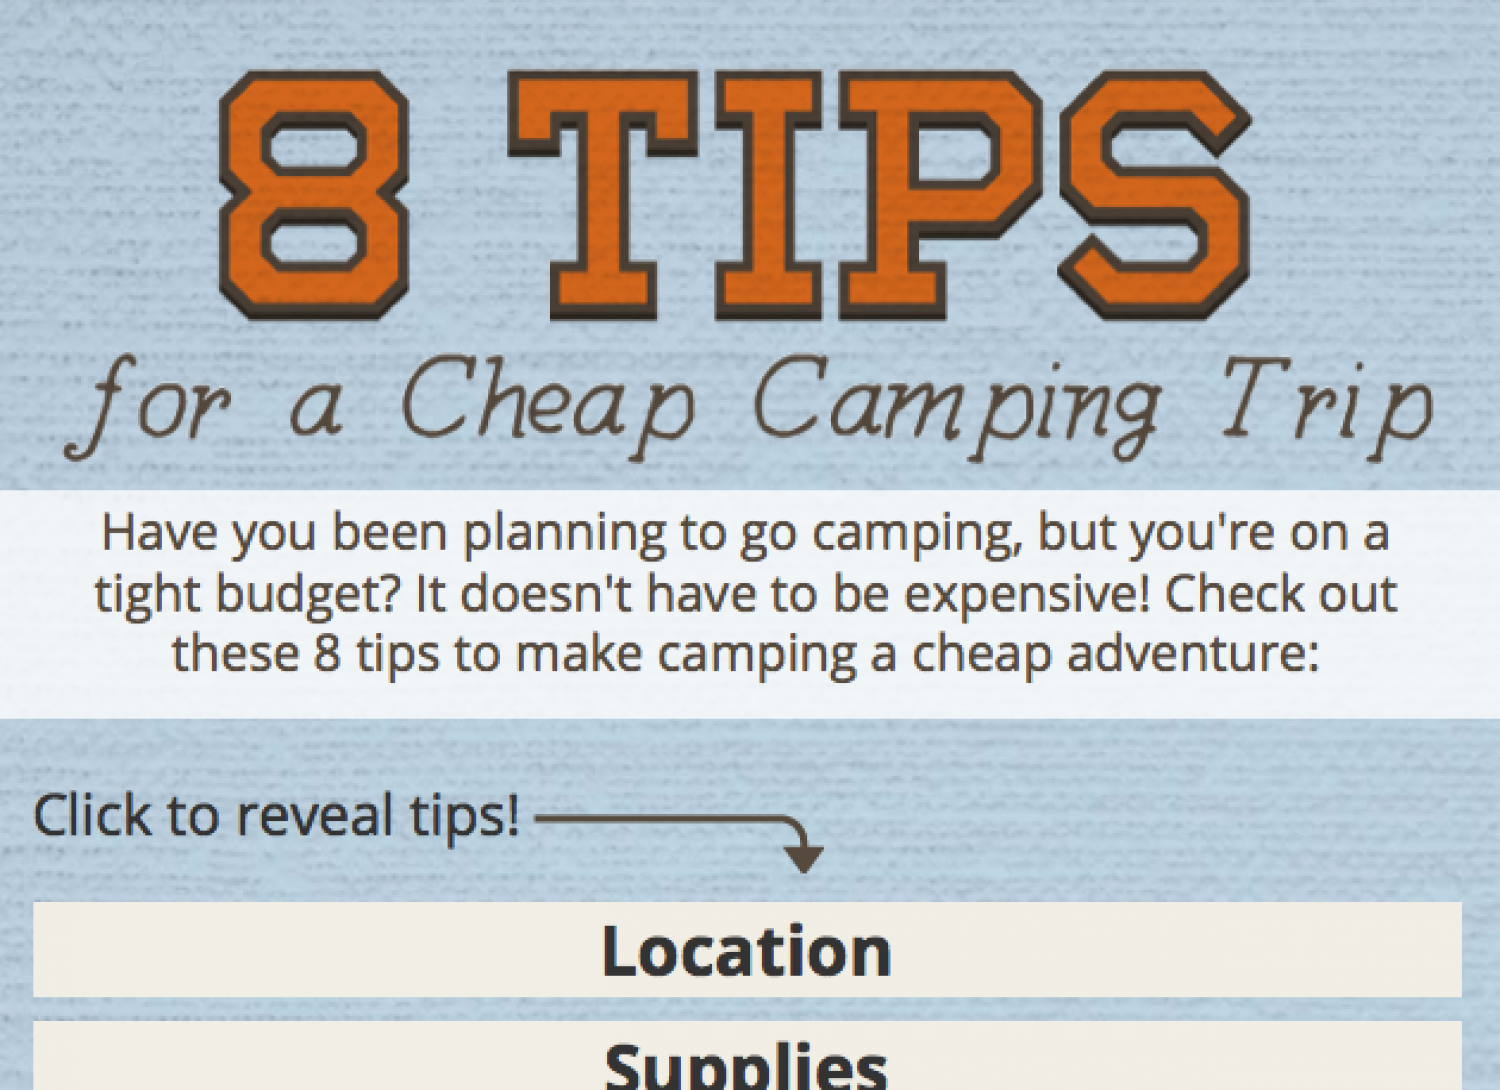 8 Tips for a Cheap Camping Trip Infographic